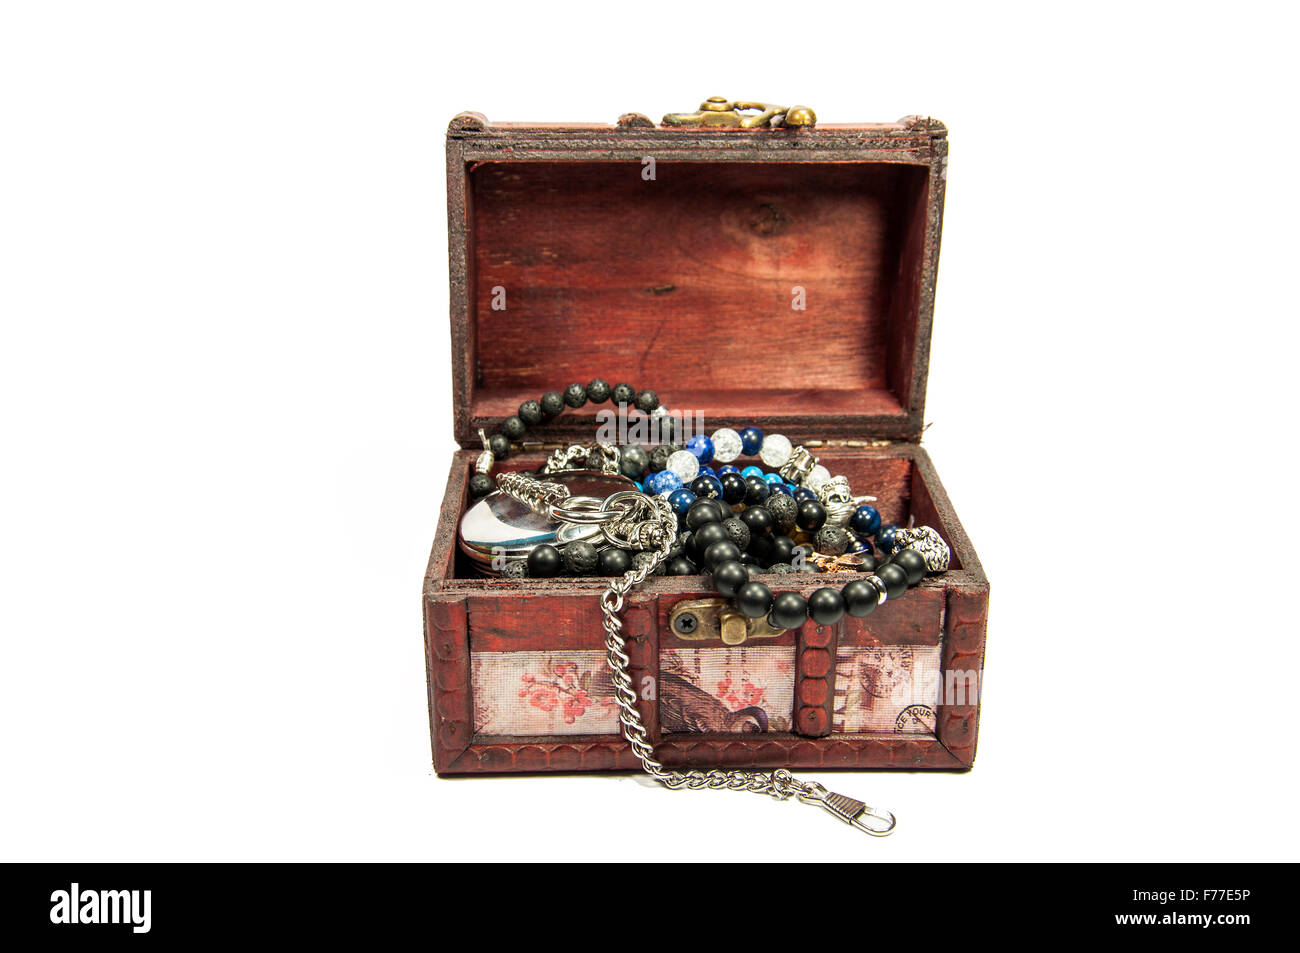 A wooden treasure chest filled with loot. - Stock Image